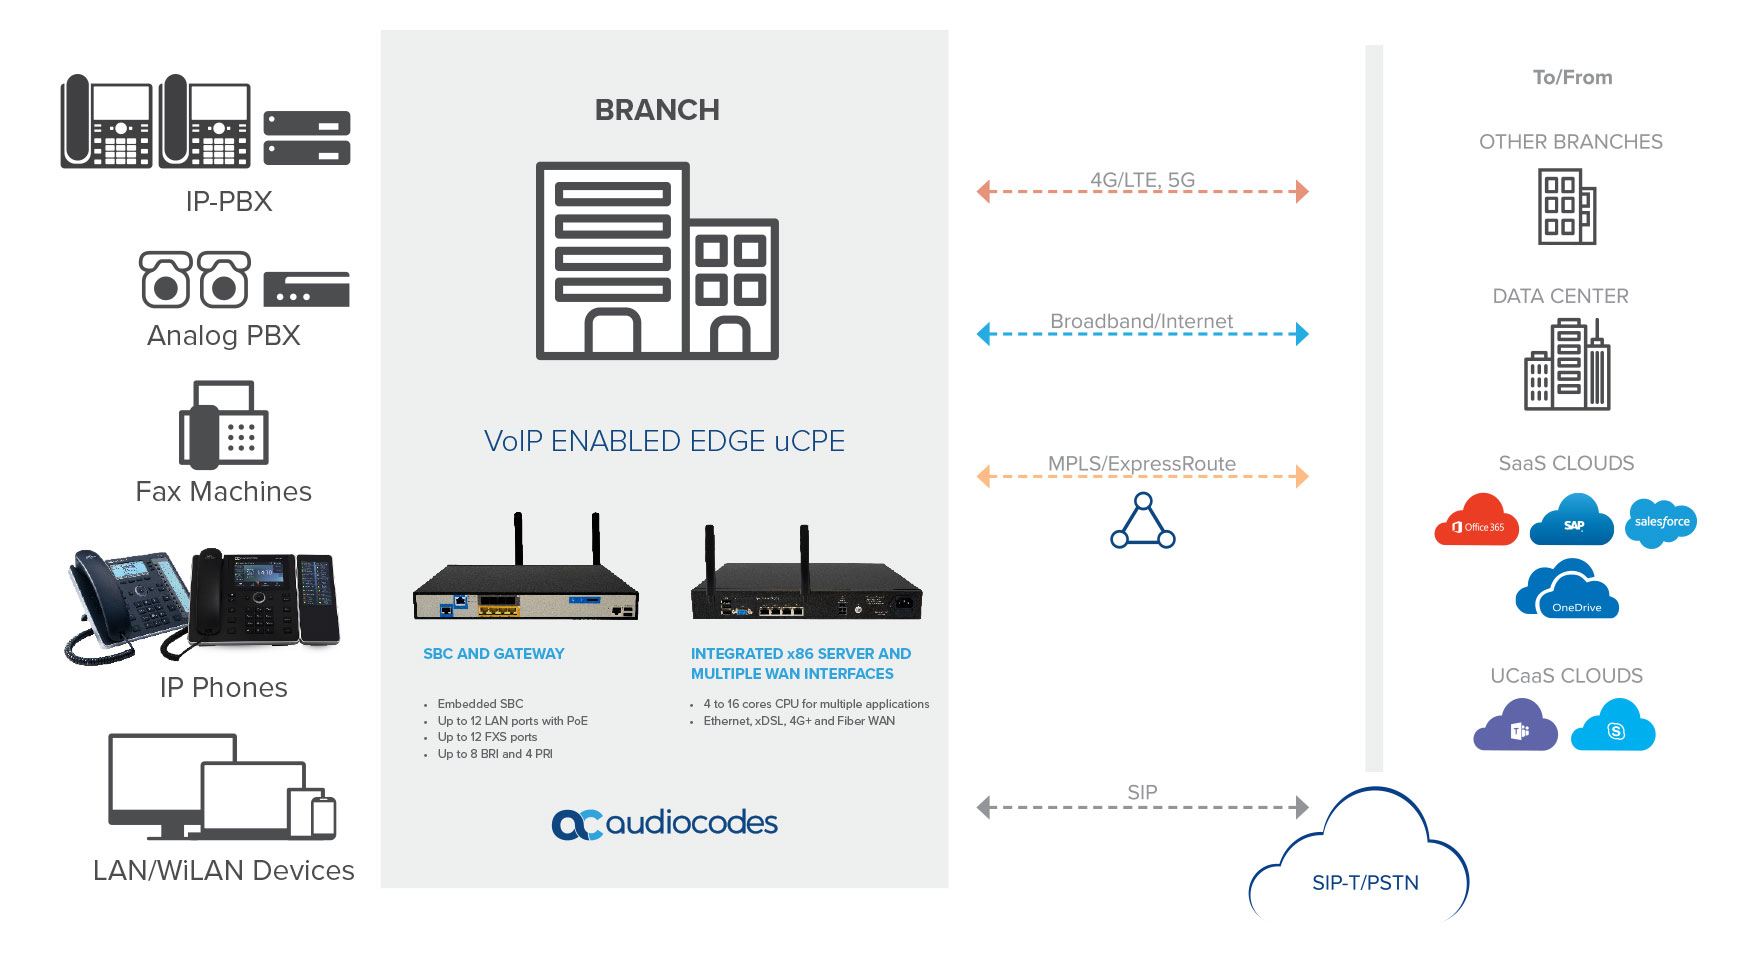 SD-WAN for Unified Communications (UC) Branch Deployment